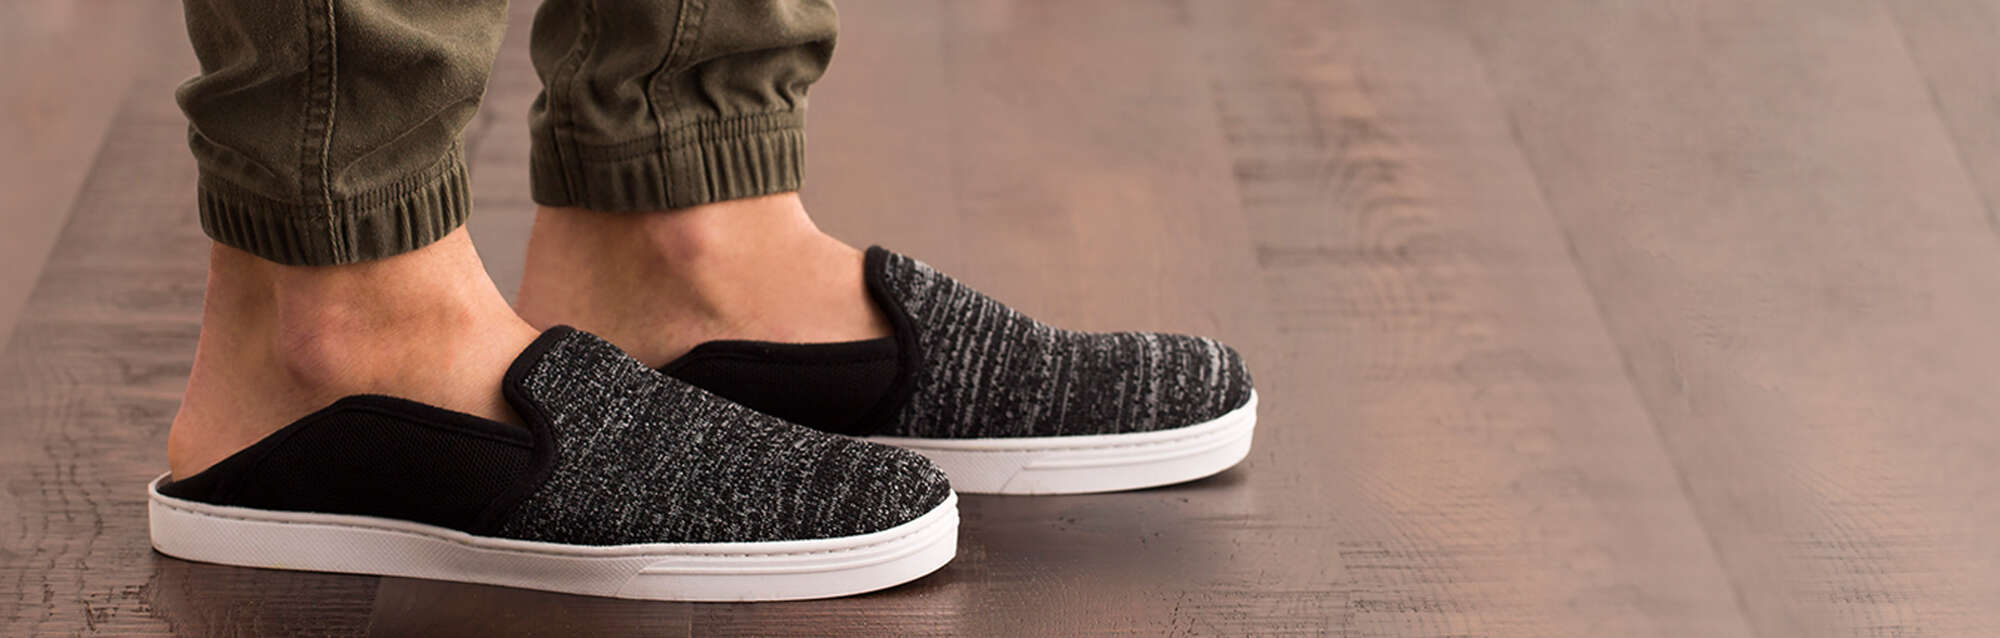 Slippers Reimagined